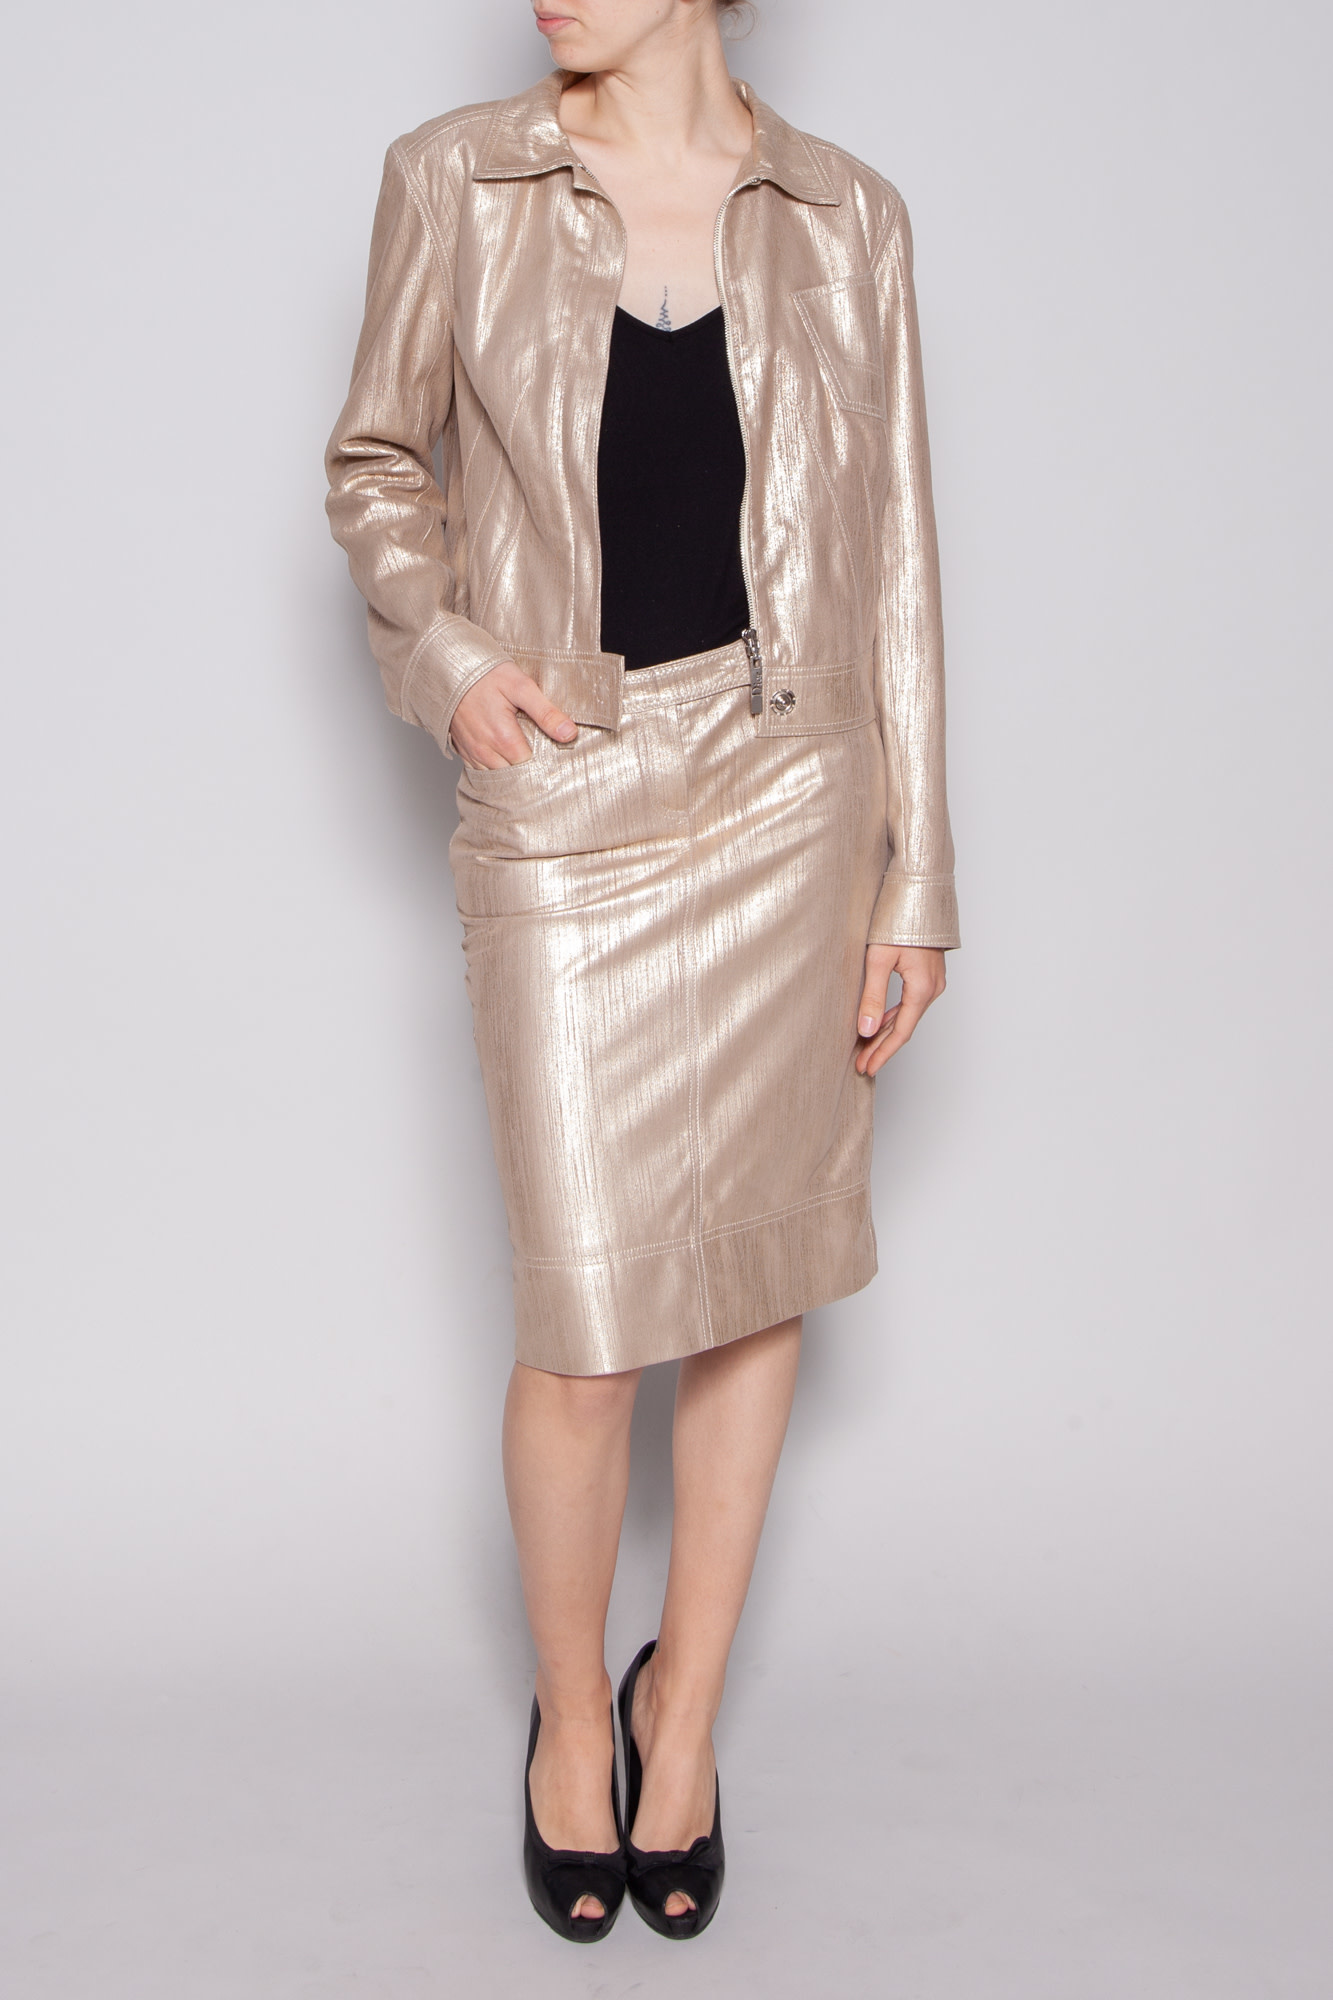 Christian Dior GOLD LEATHER JACKET